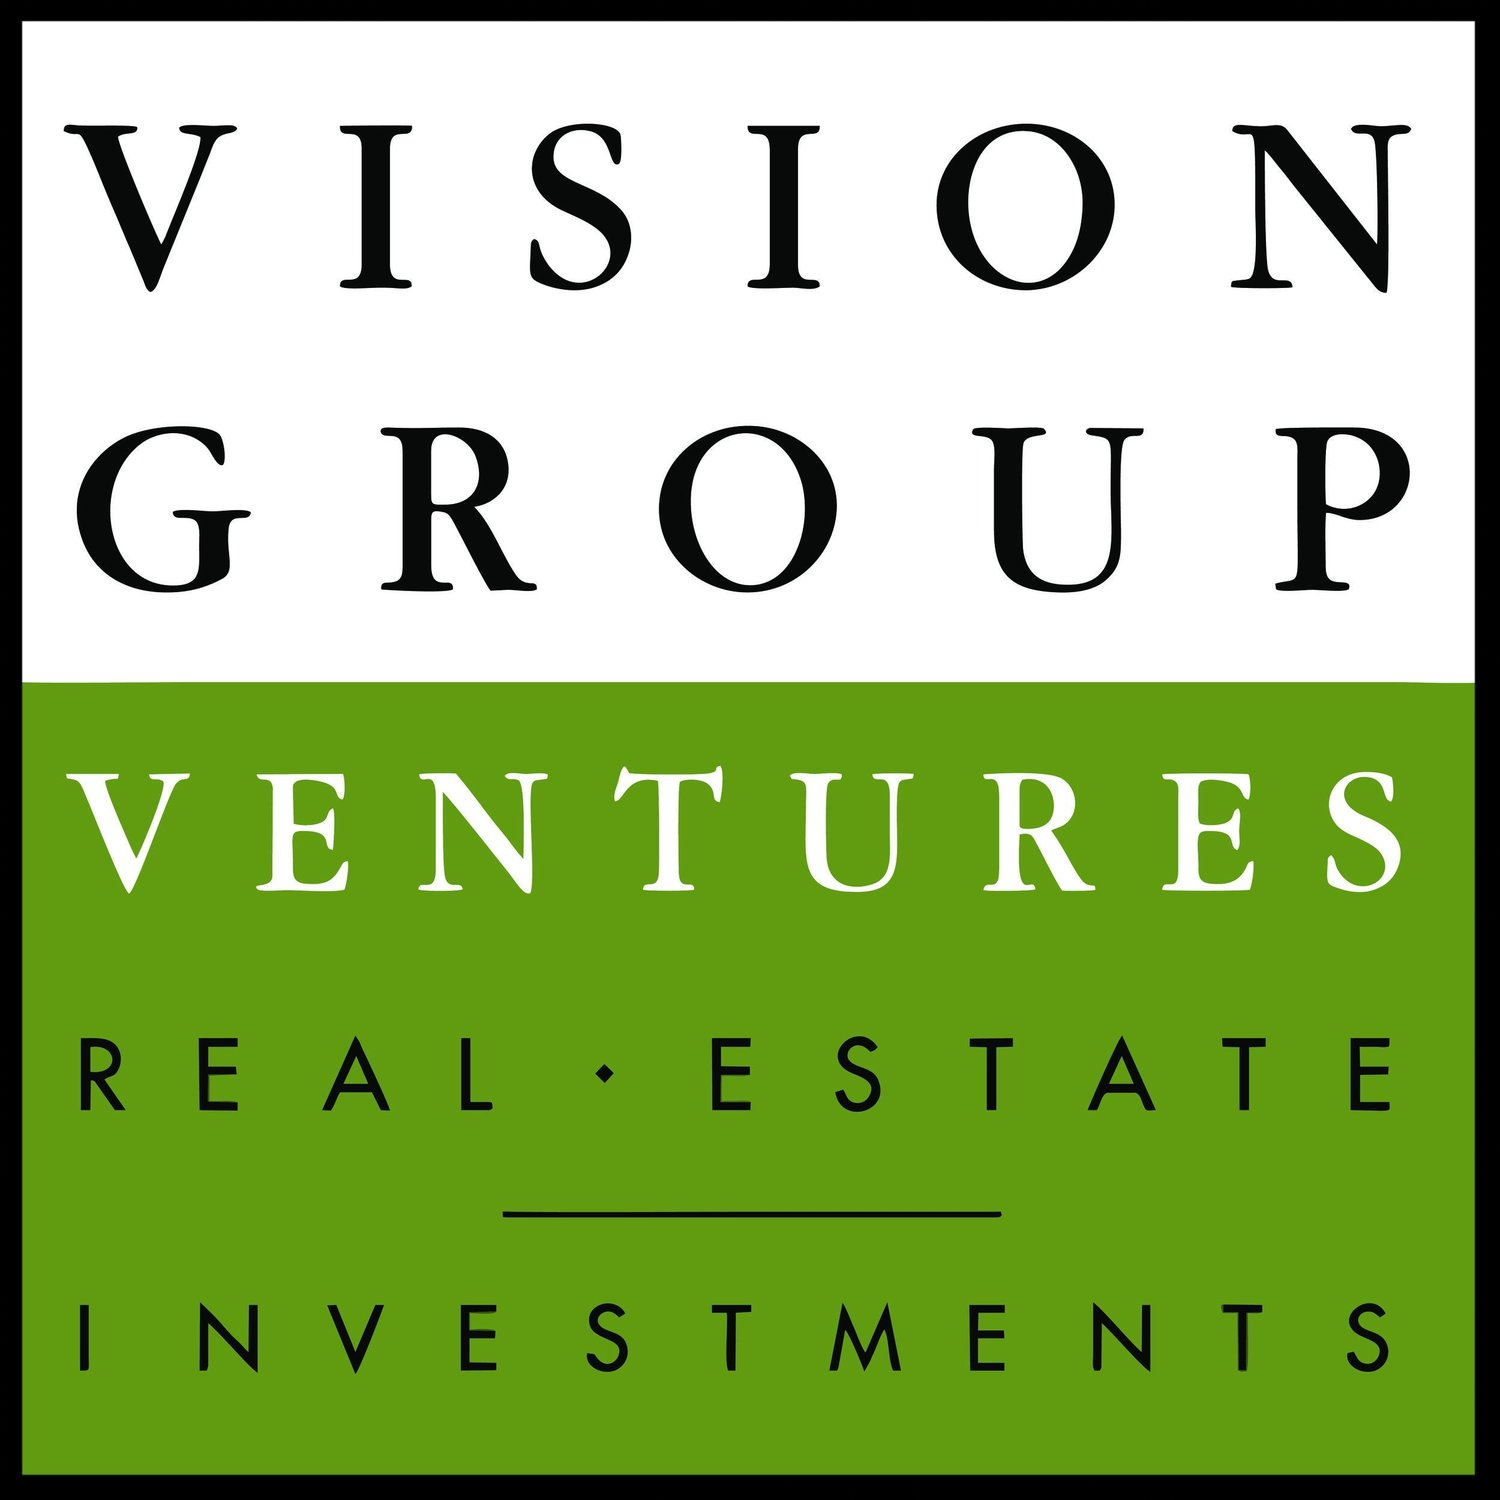 Vision Group Ventures